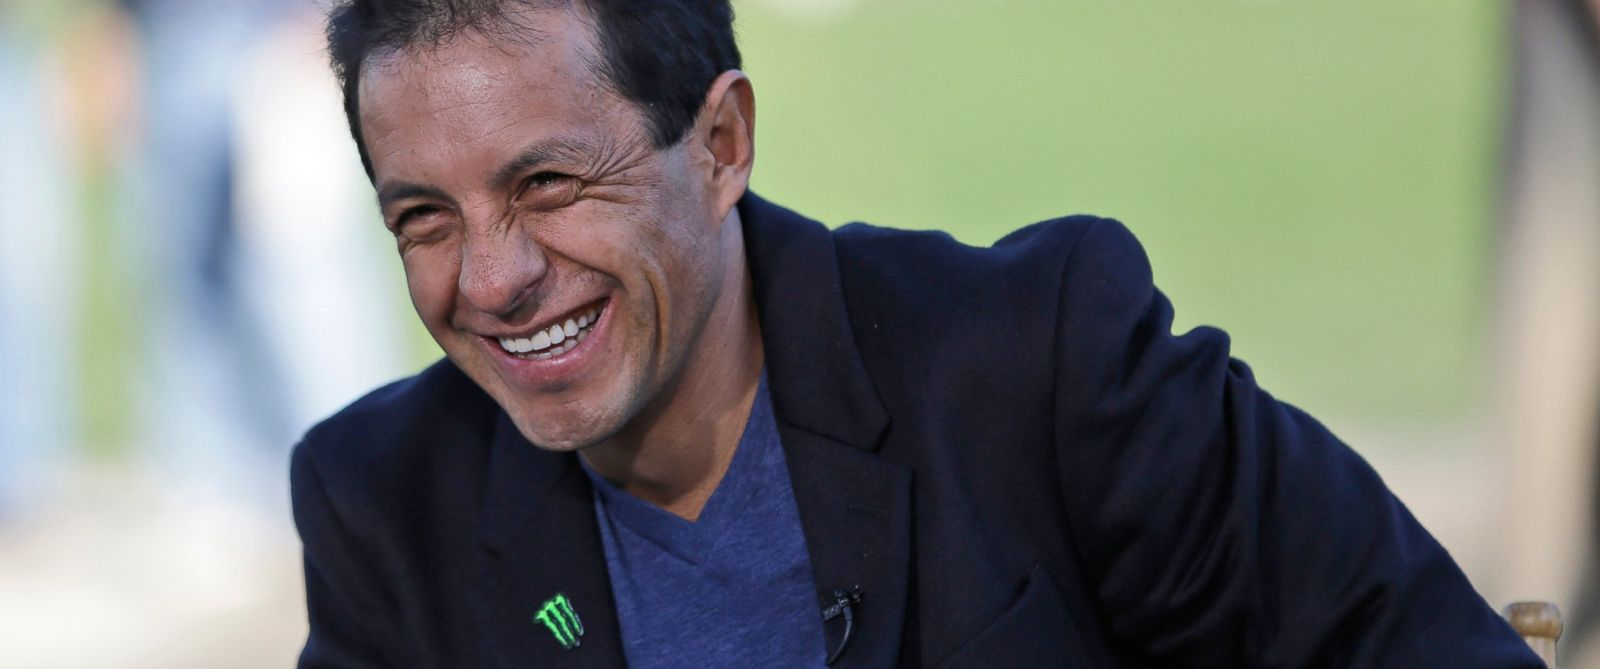 PHOTO: Jockey Victor Espinoza smiles at Belmont Park in Elmont, N.Y., Sunday, June 7, 2015.